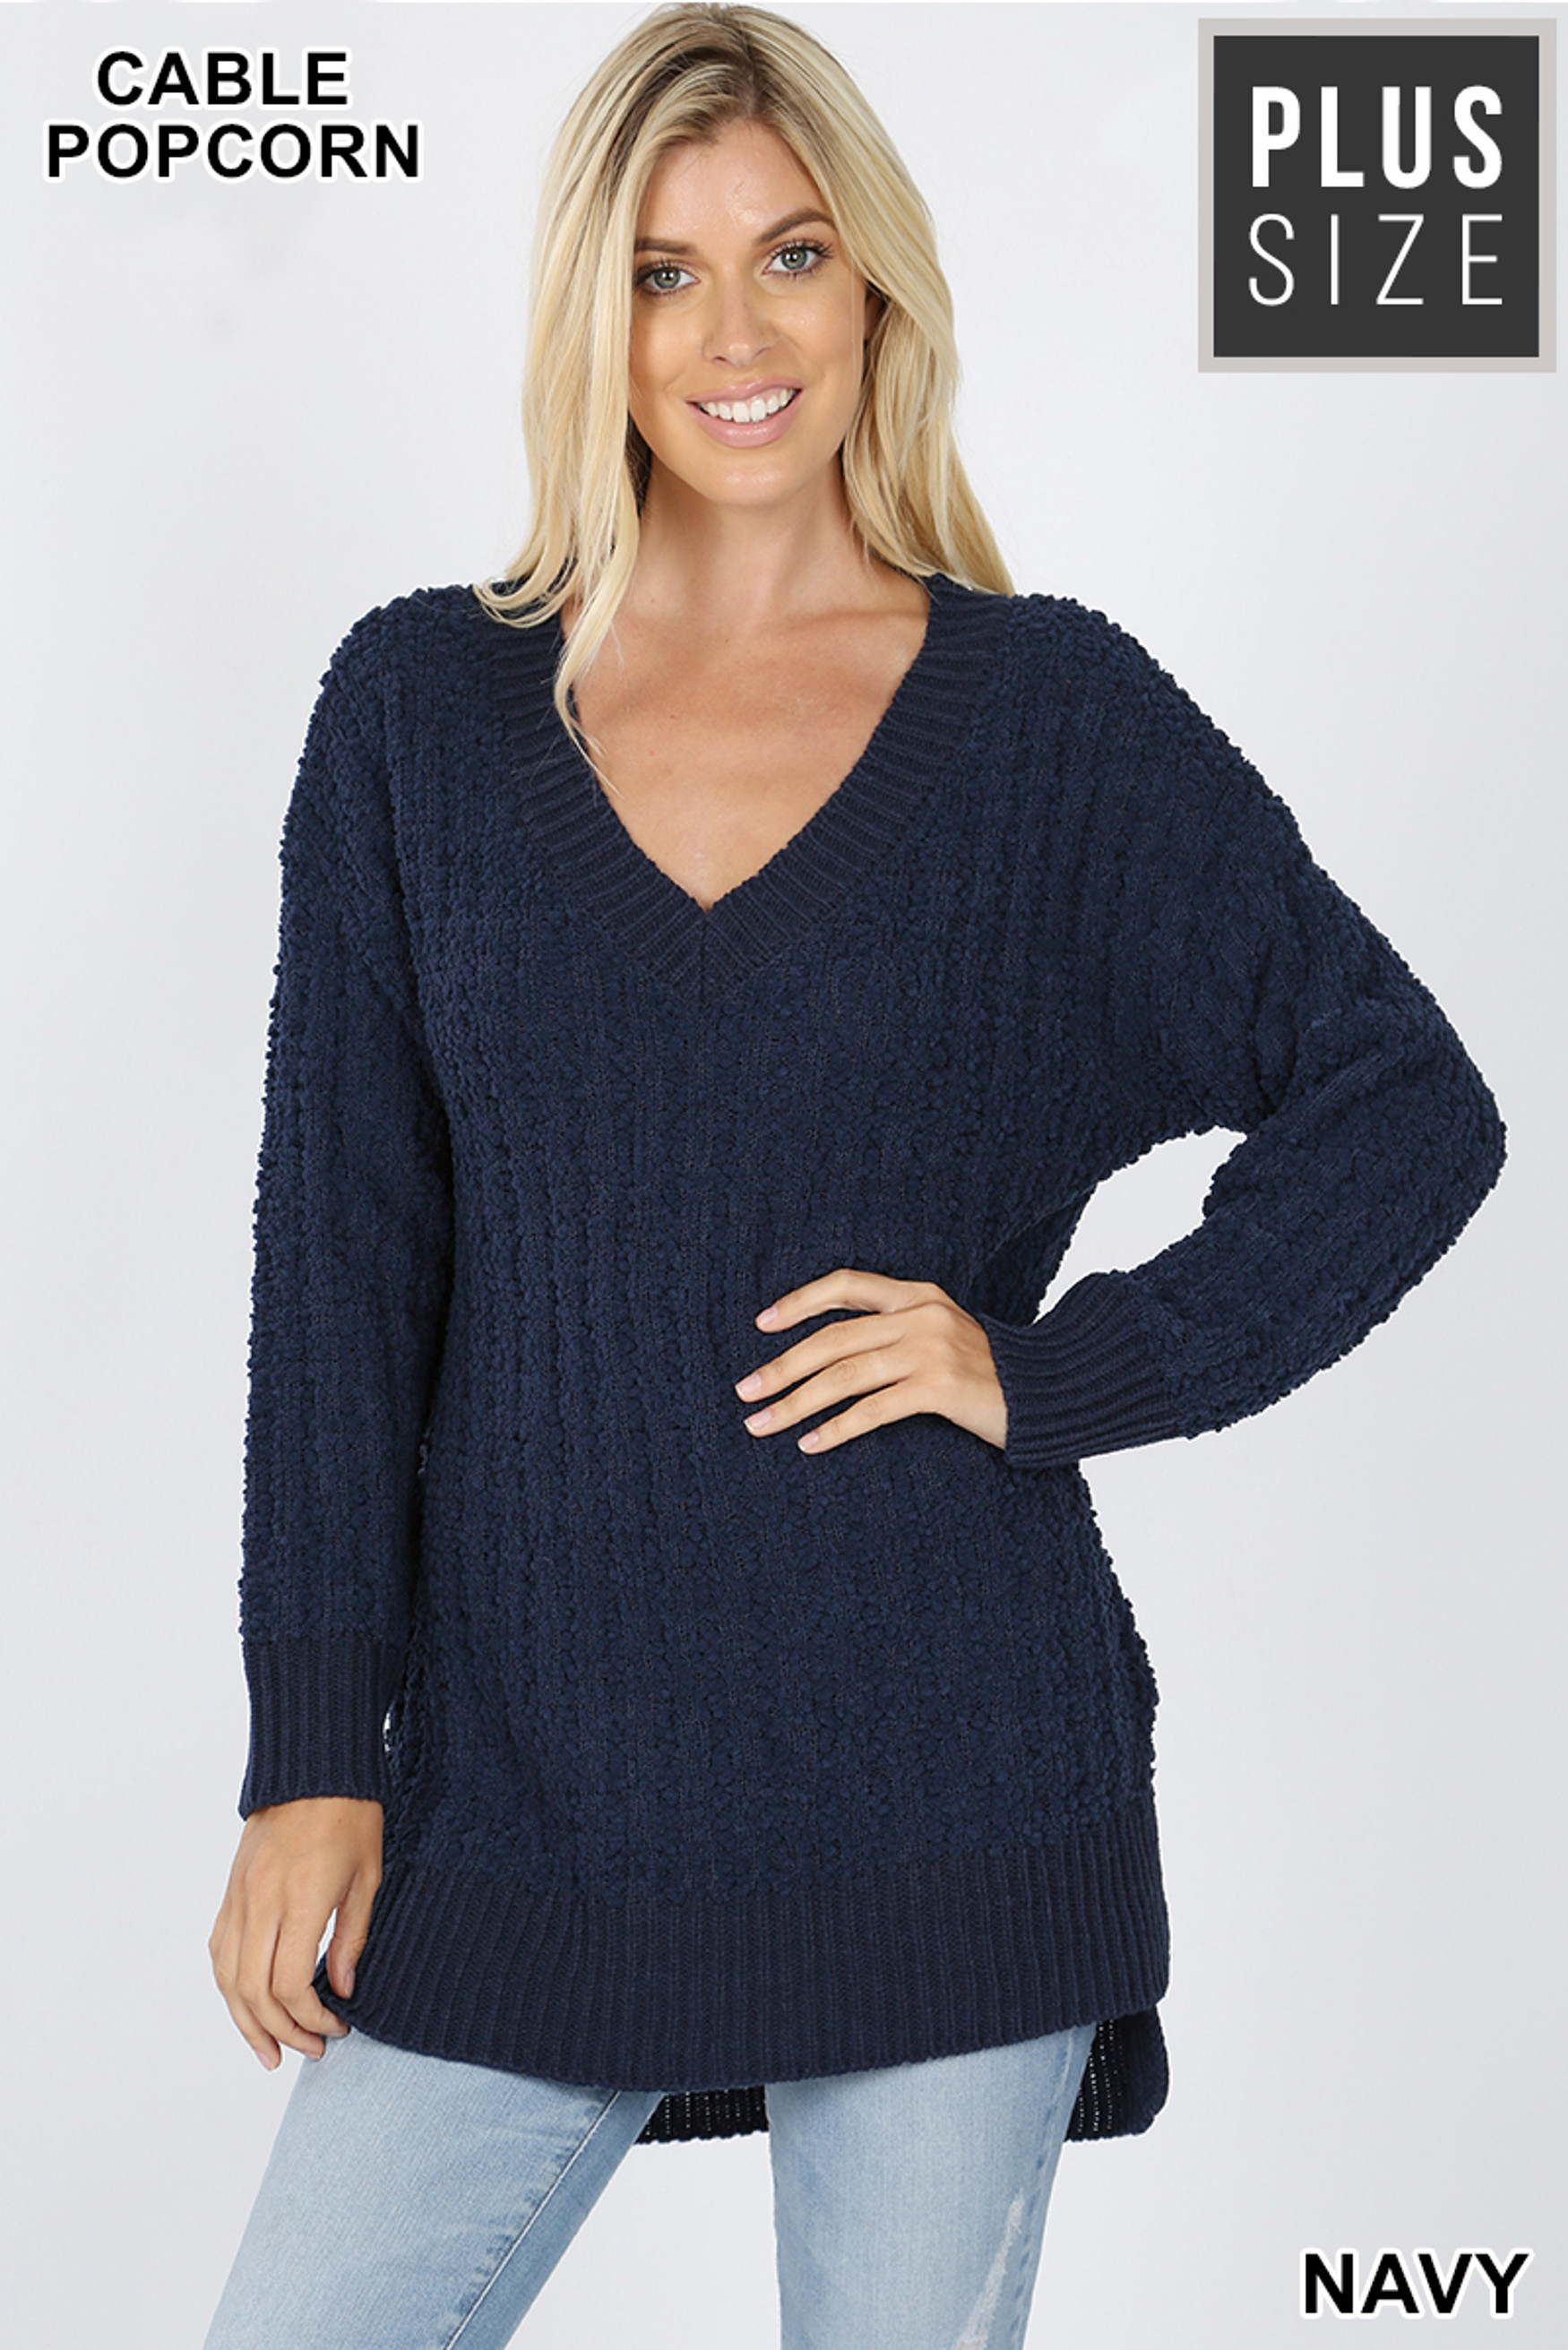 Front image of Navy Cable Knit Popcorn V-Neck Hi-Low Plus Size Sweater